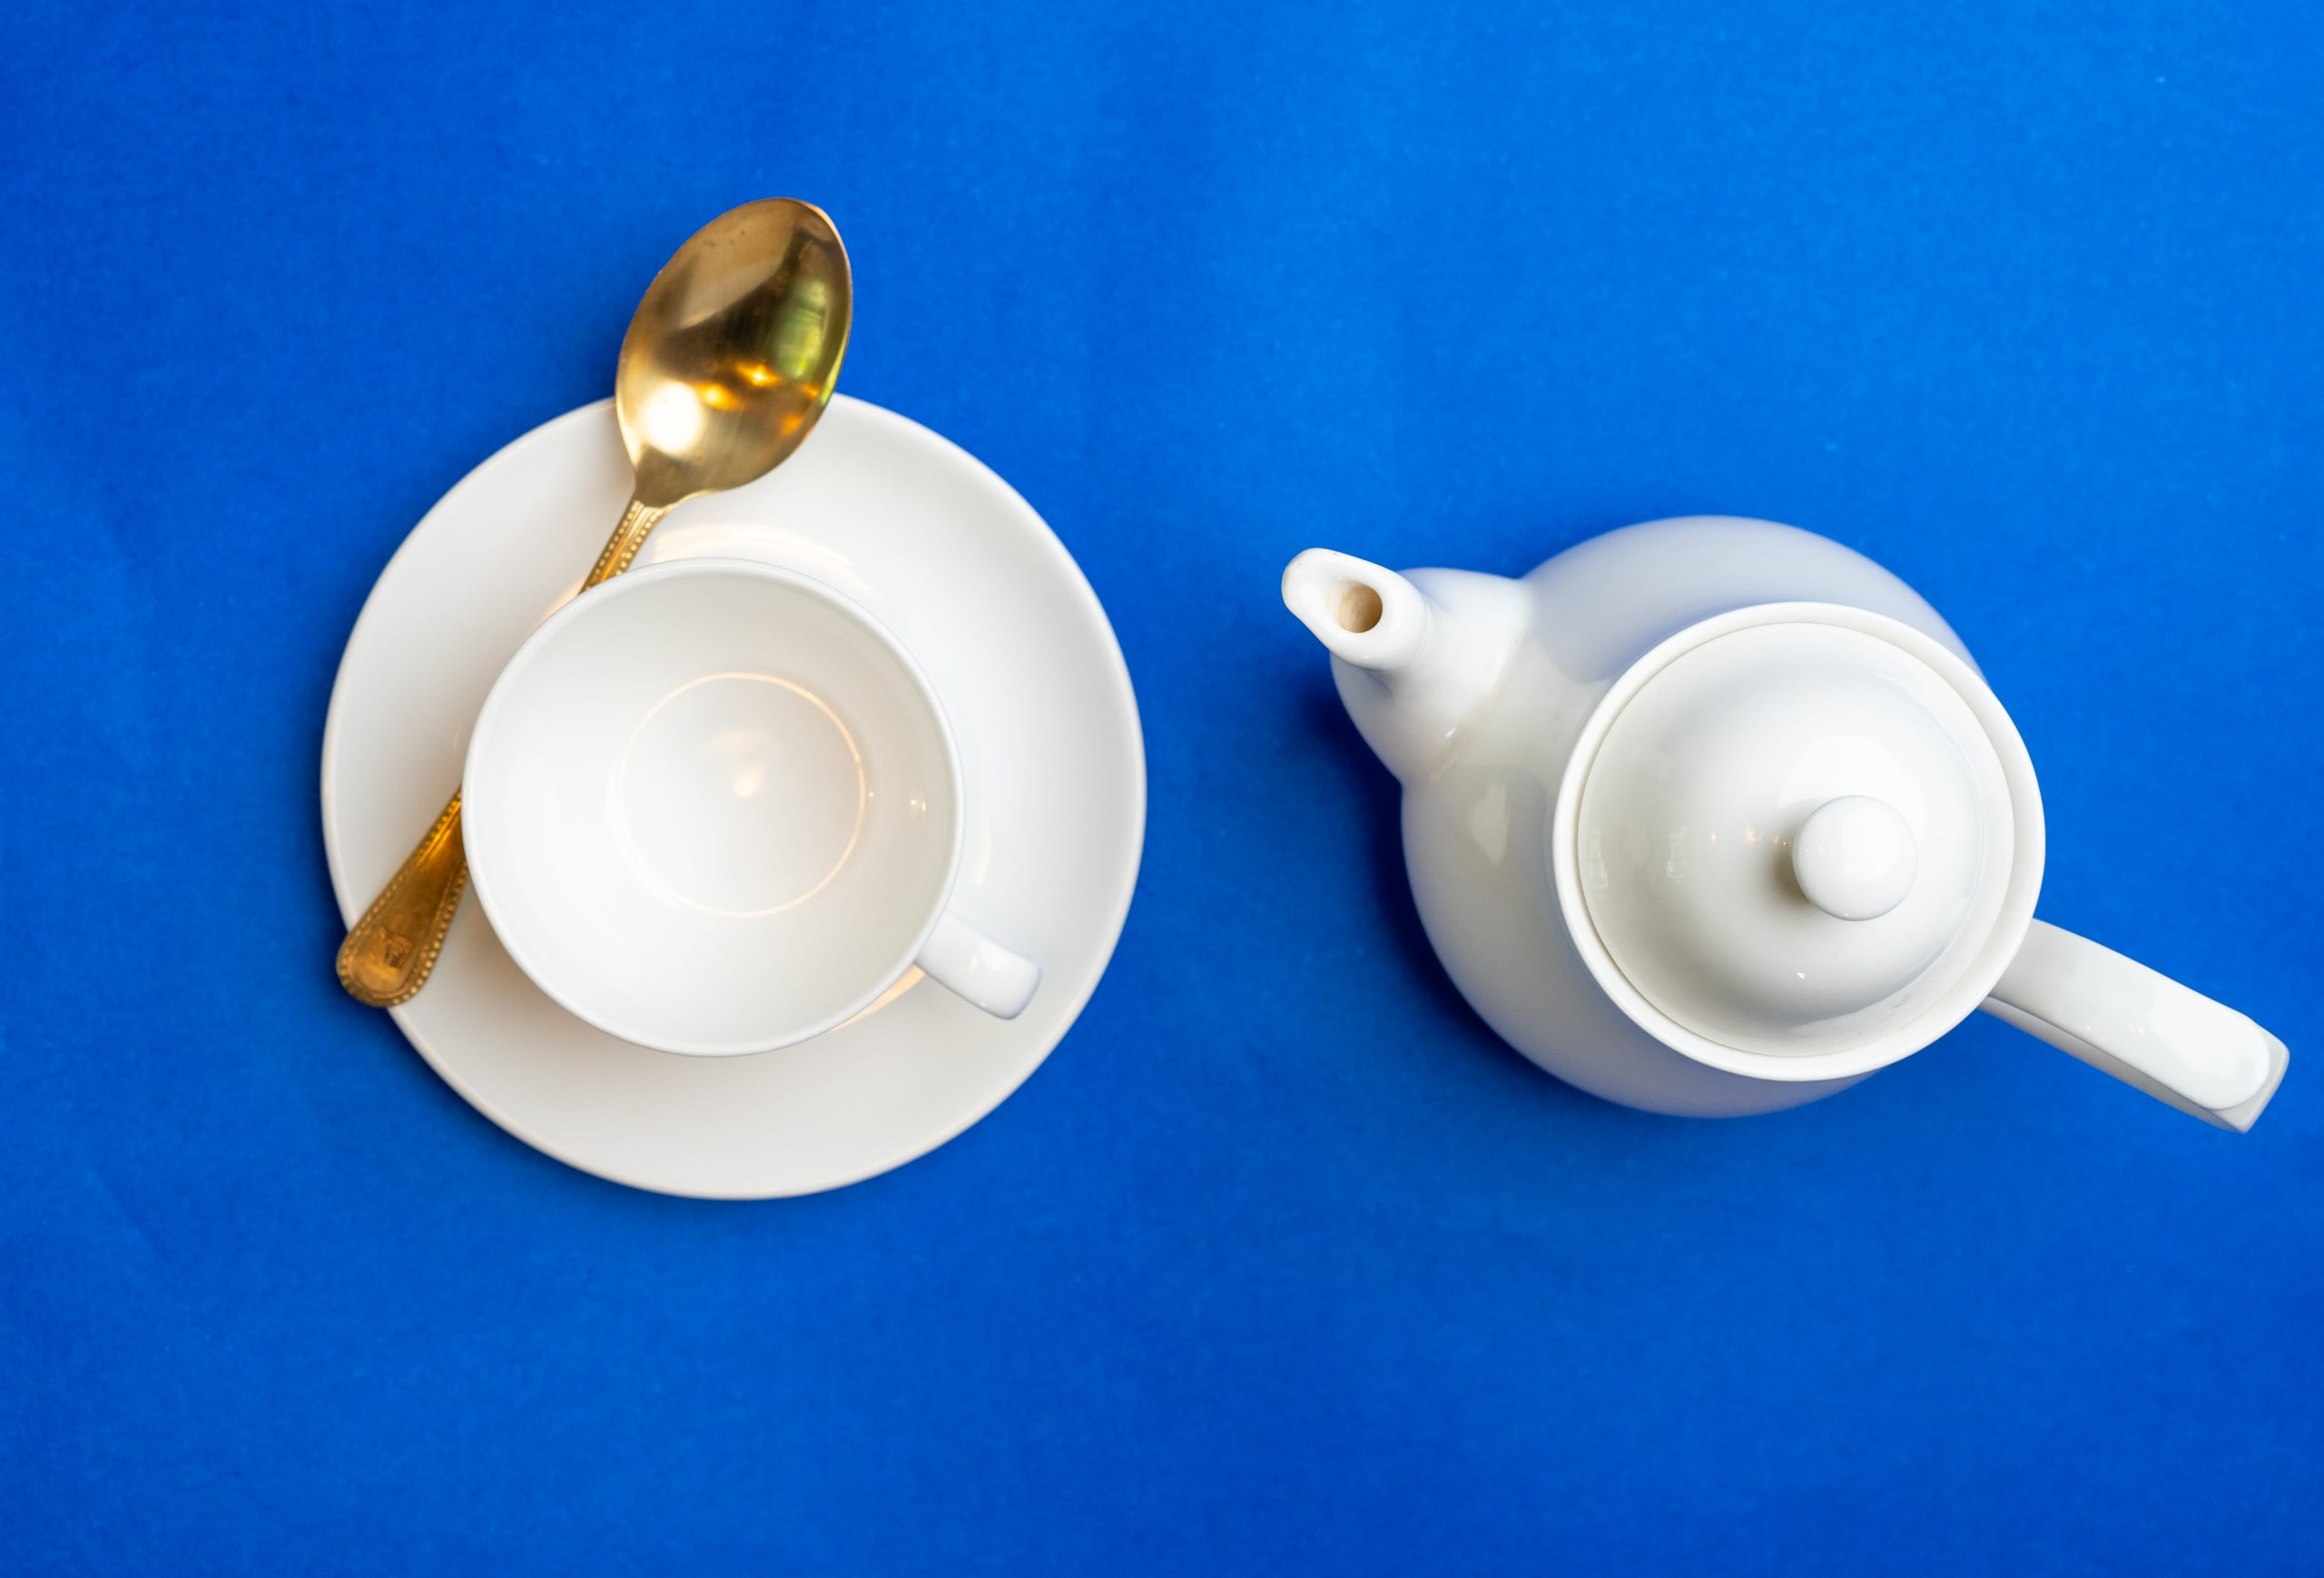 Cup and kettle on blue background